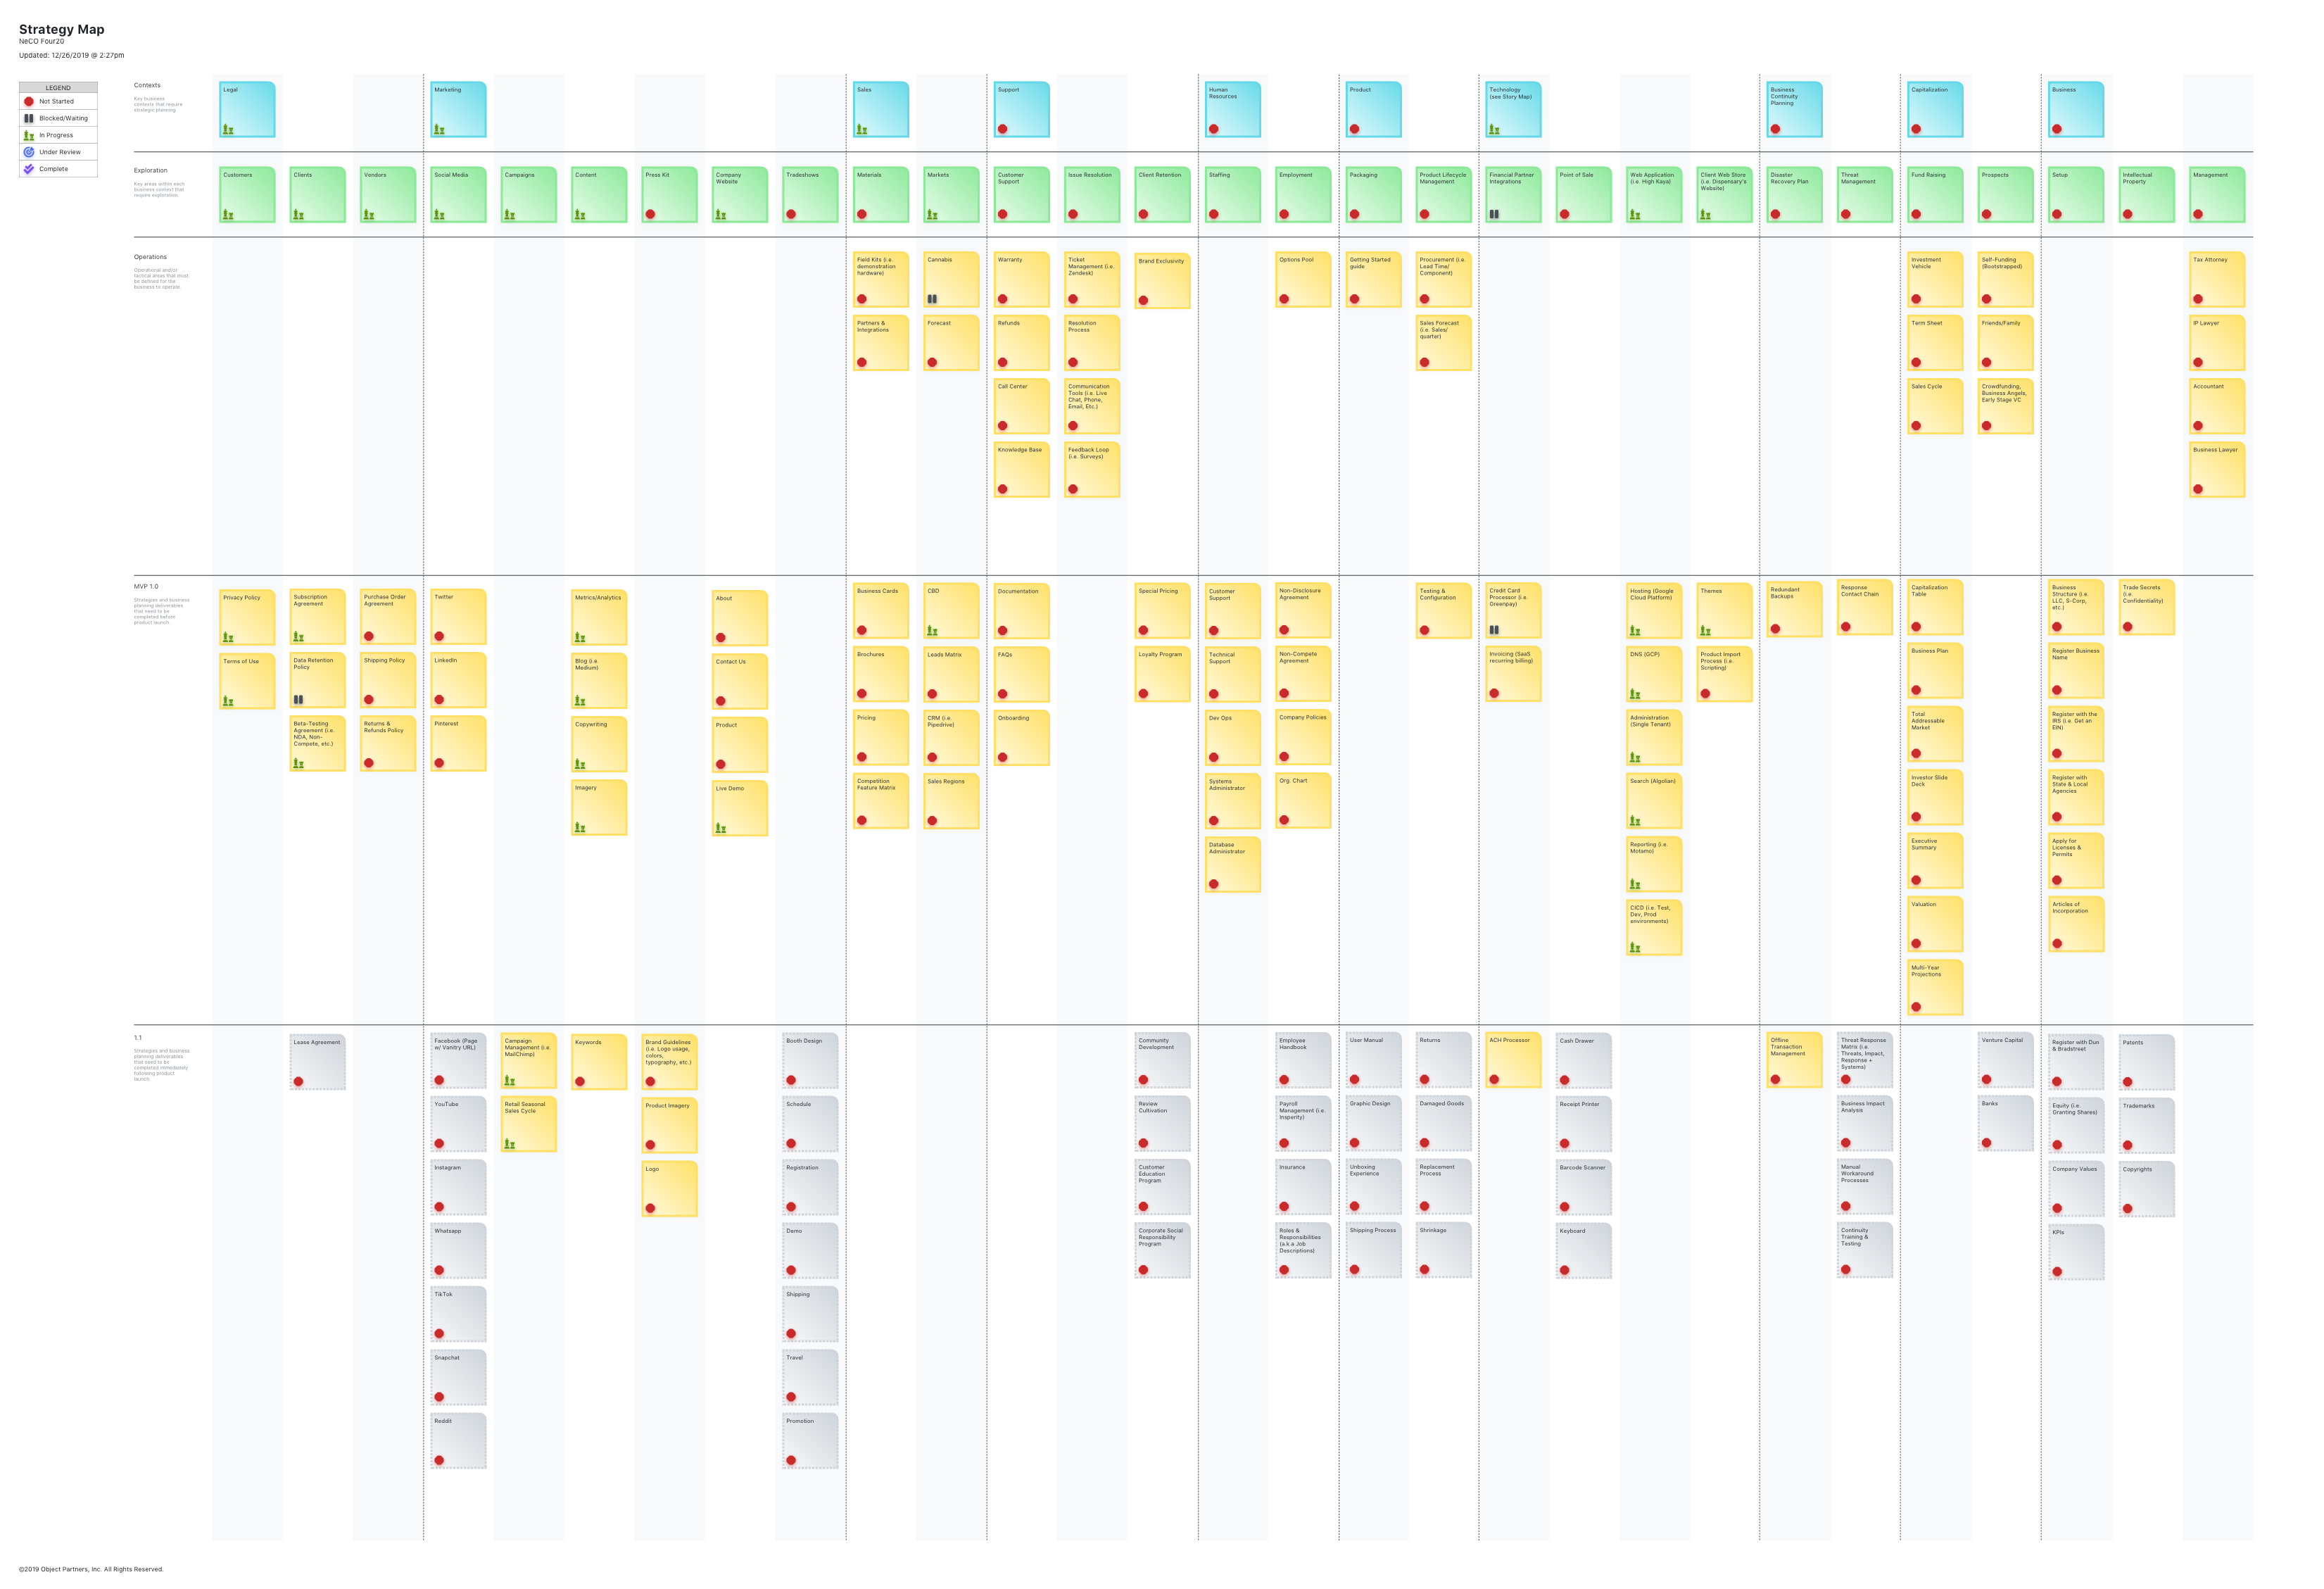 A Strategy Map was created to prioritize business tasks